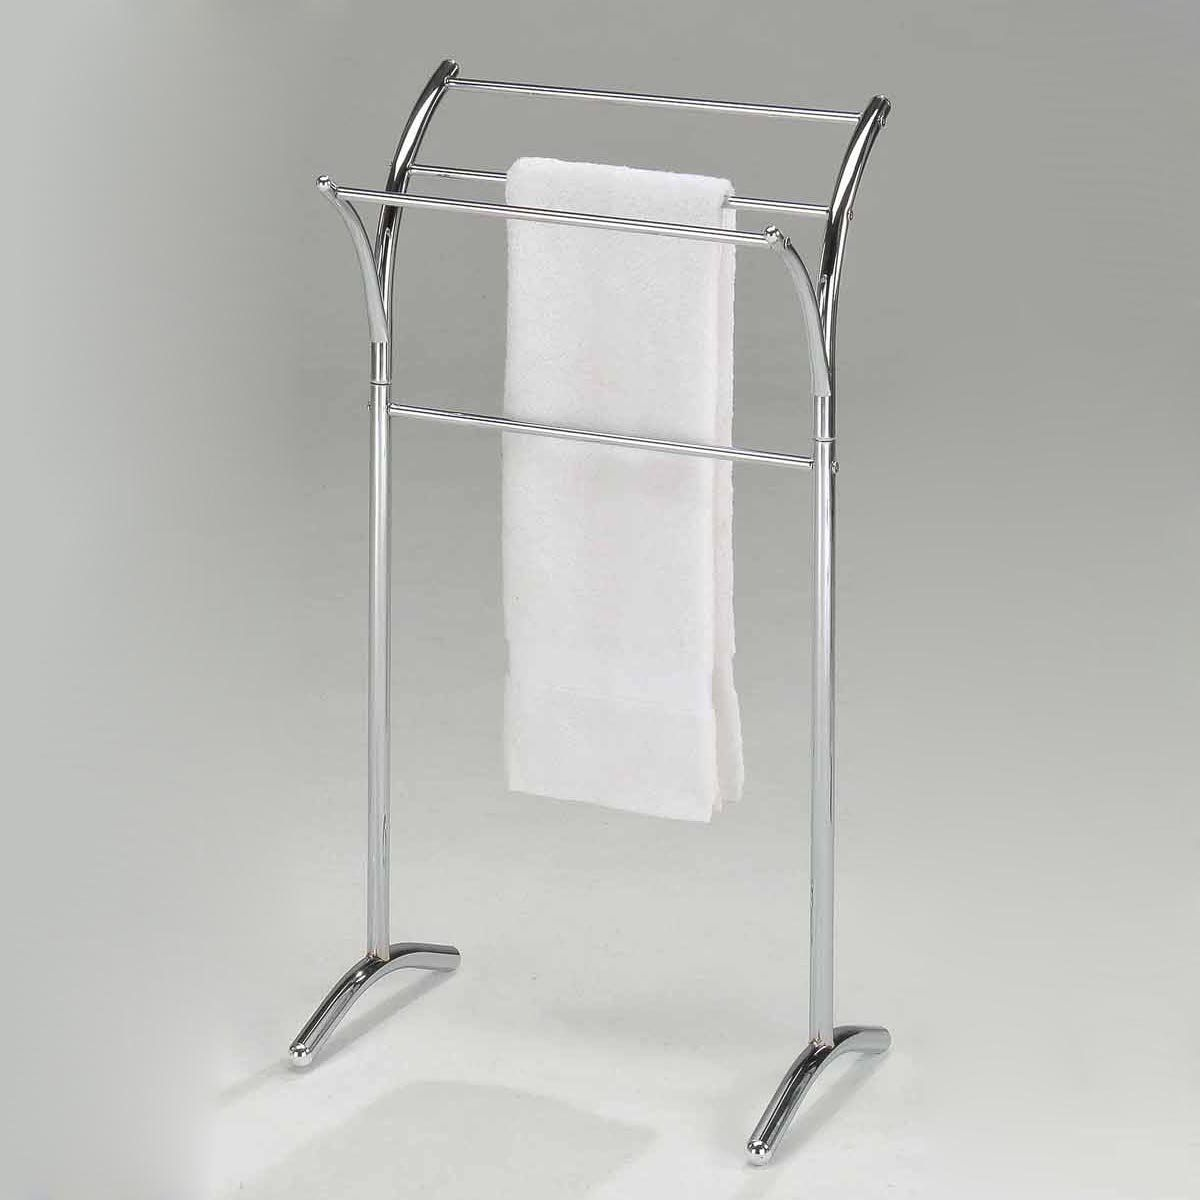 freestanding pin chromed rack modern stand design bathroom towel three